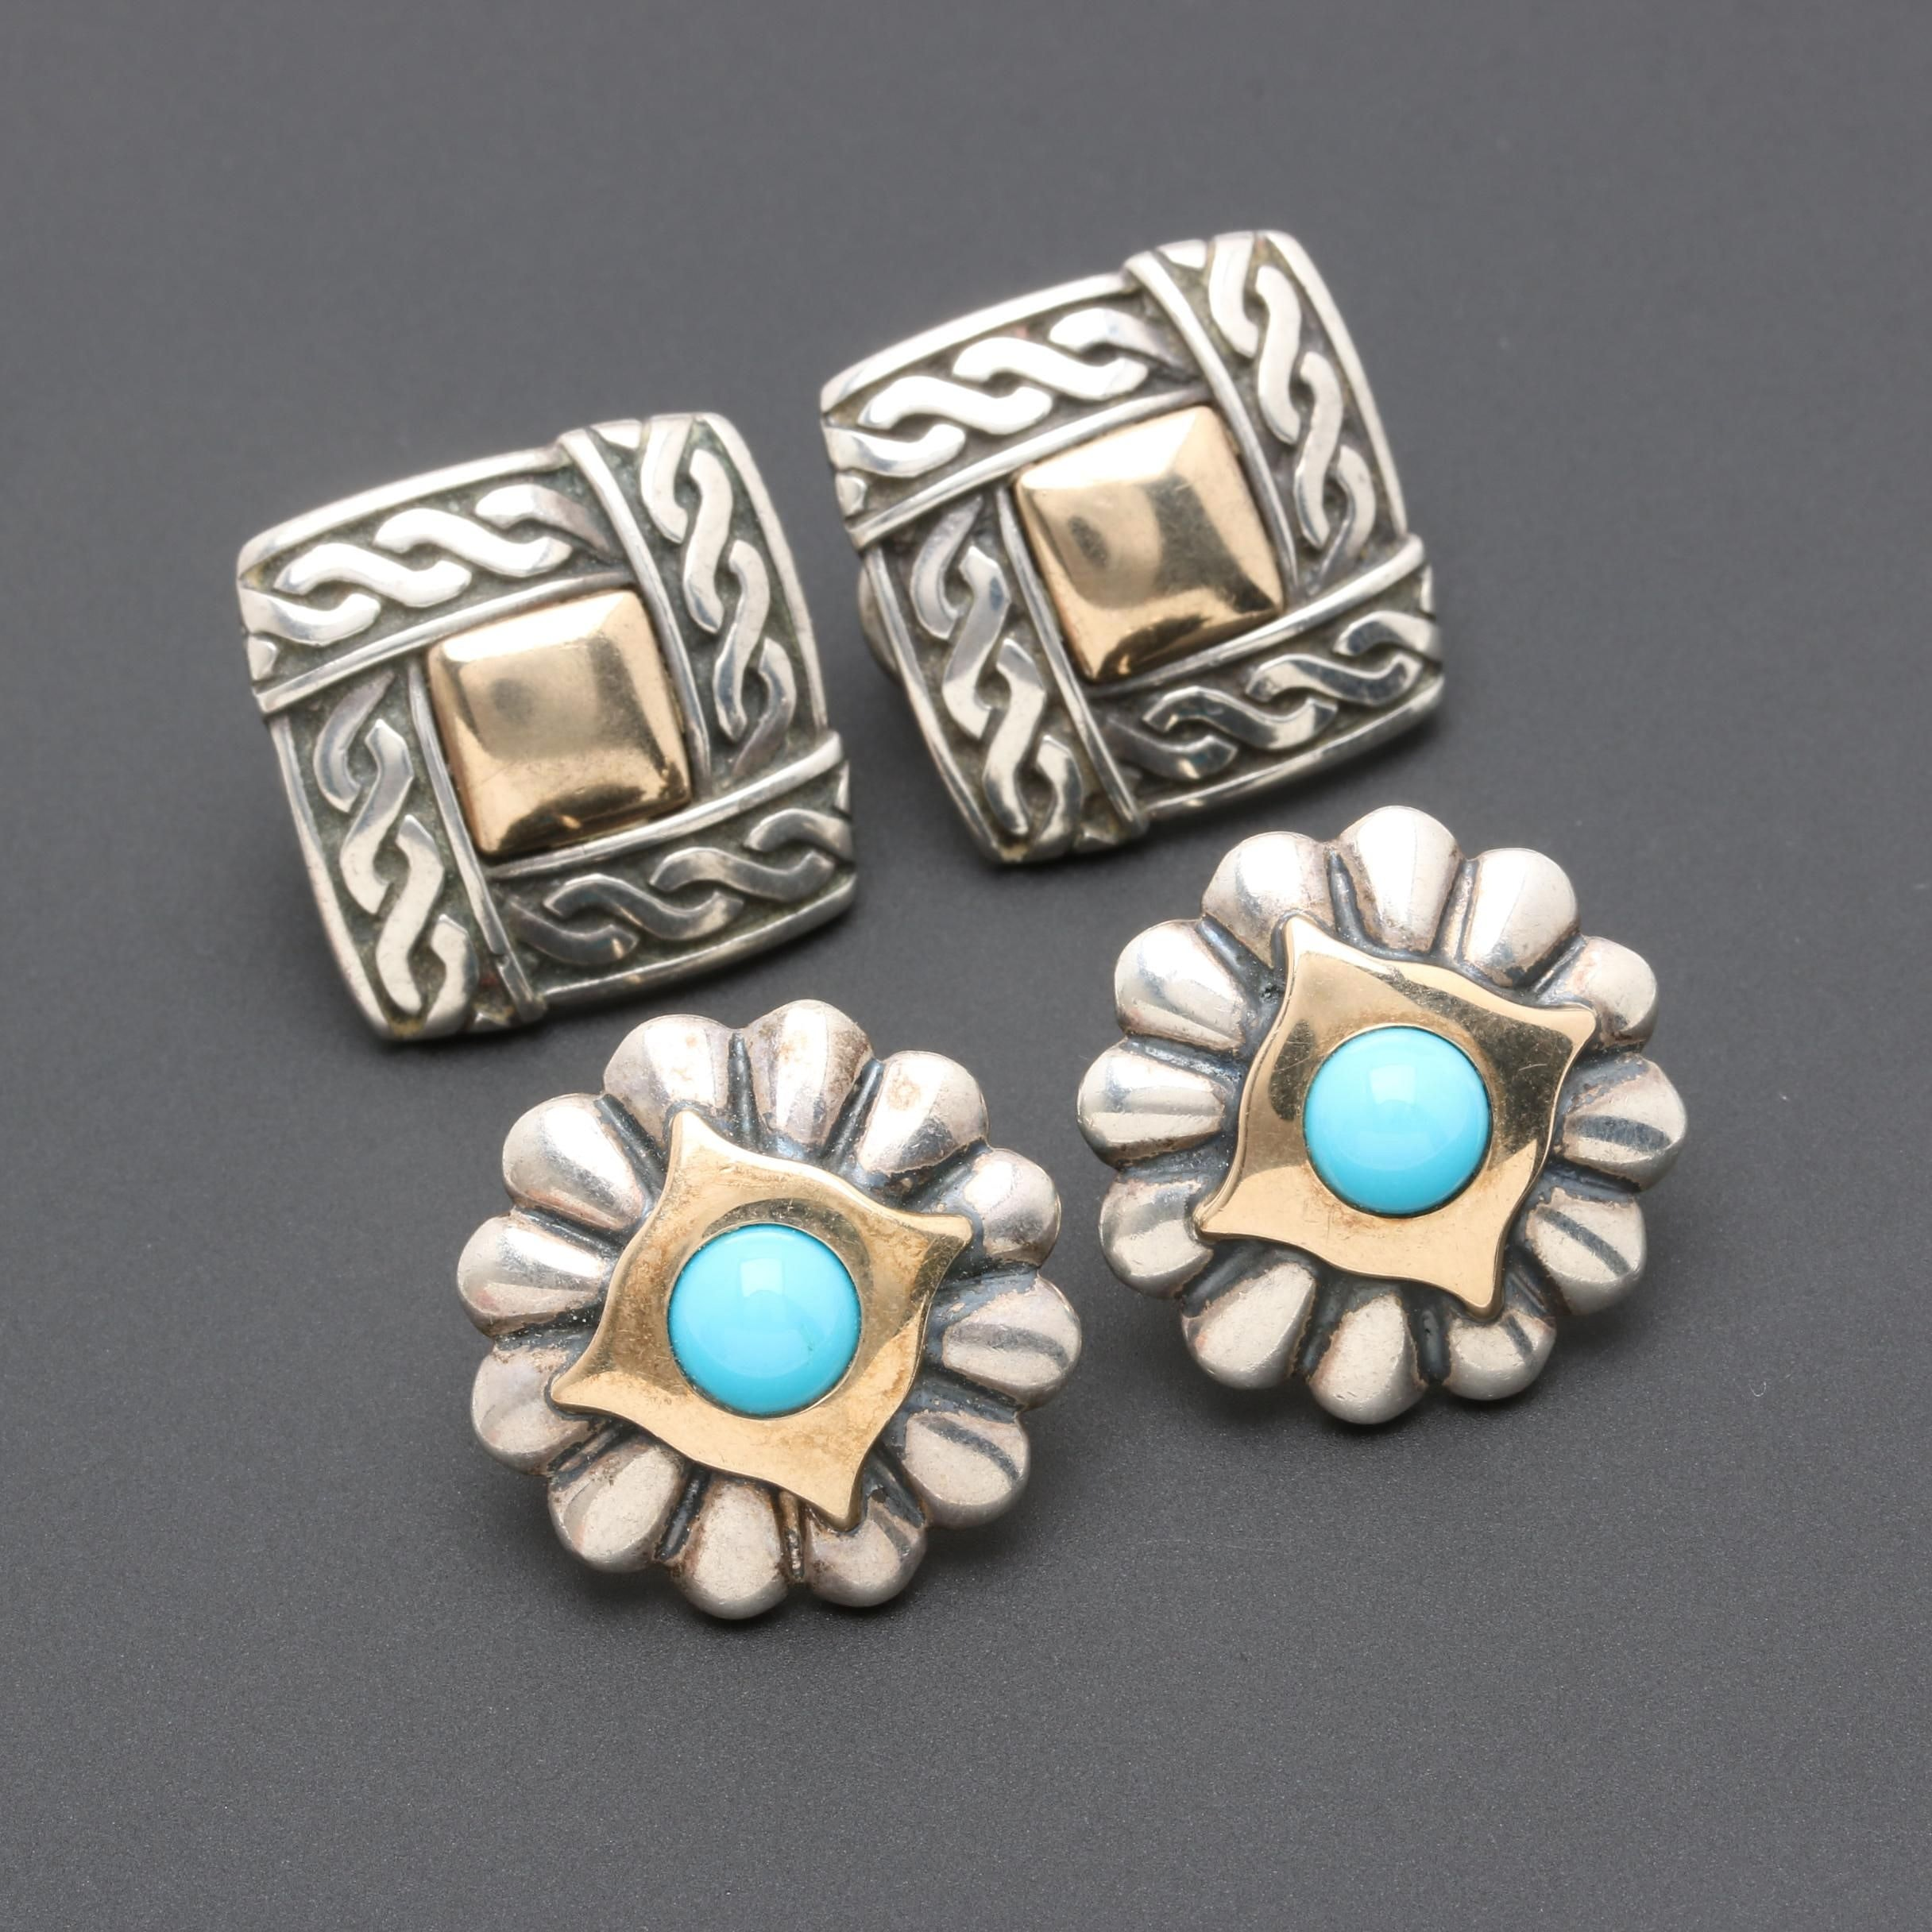 James Reid and James Avery Sterling Silver Earring Selection Including Turquoise